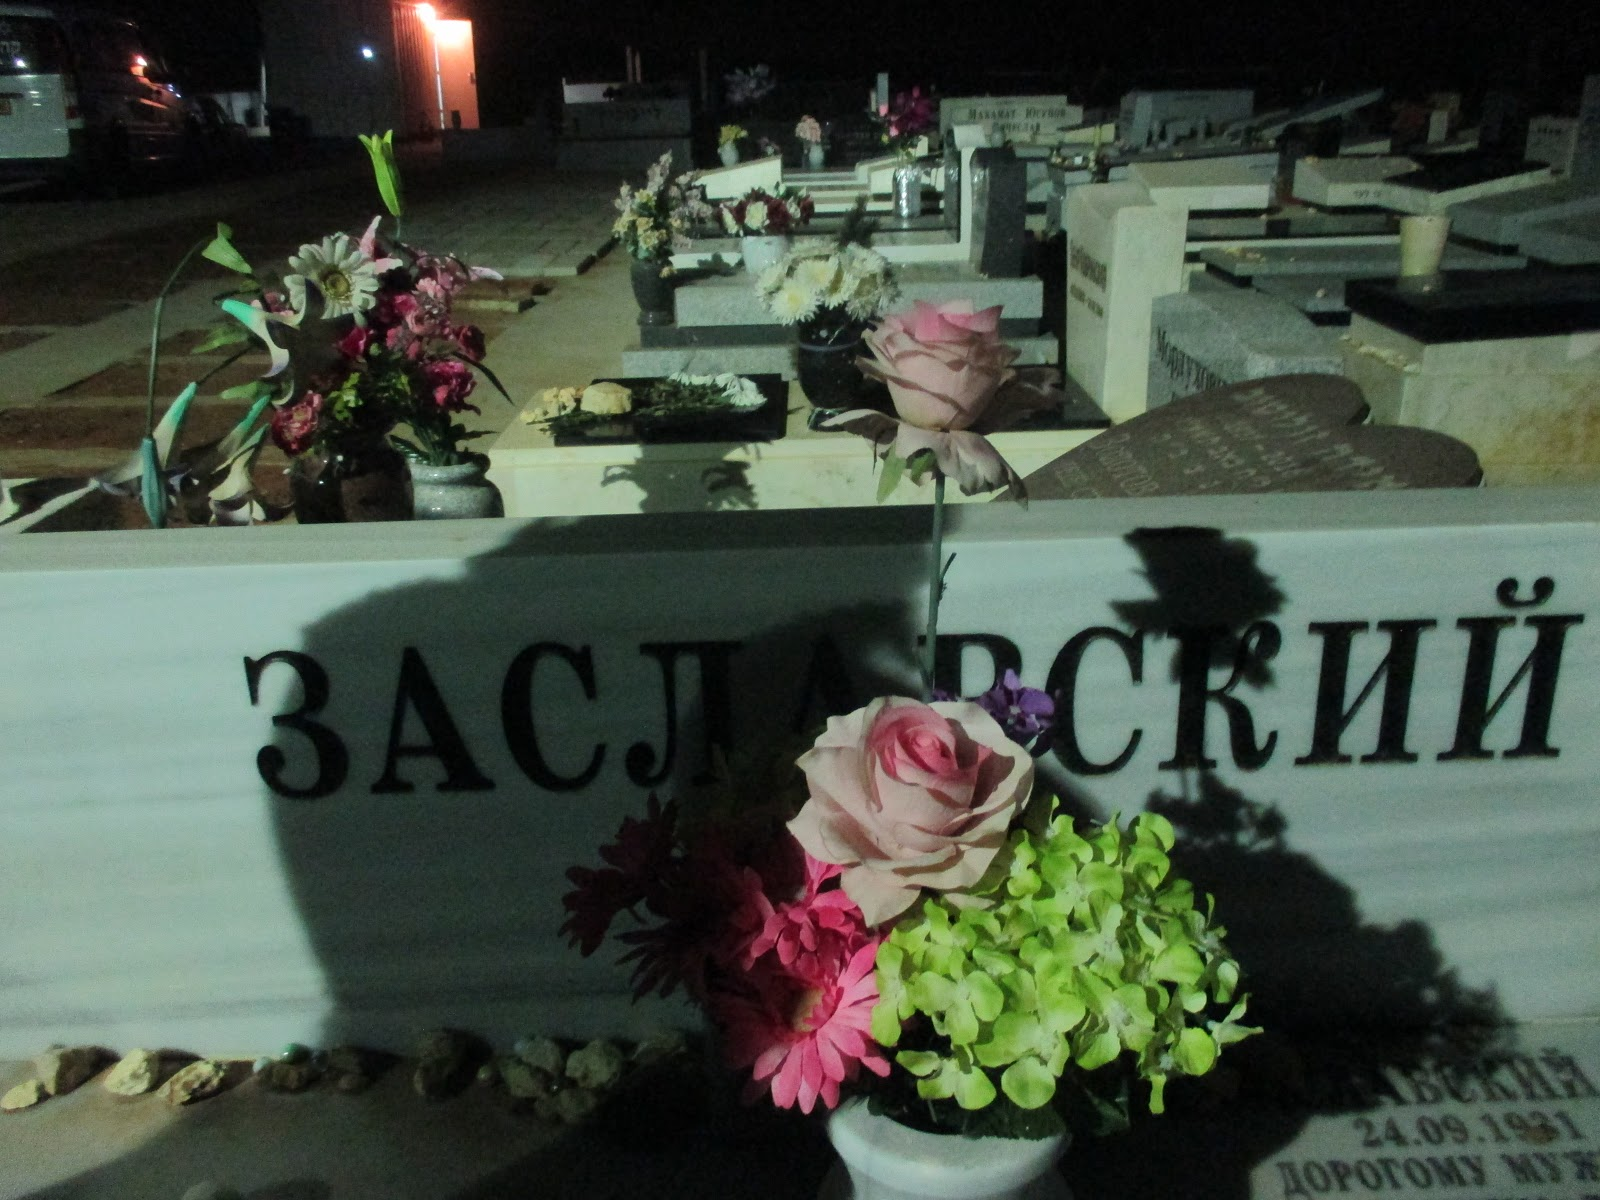 Funeral in ariel jewish burial customs israel blogger grave stones reflect the culture of the community buried there as you can see theres lots of russian written on the stones here besides hebrew izmirmasajfo Images